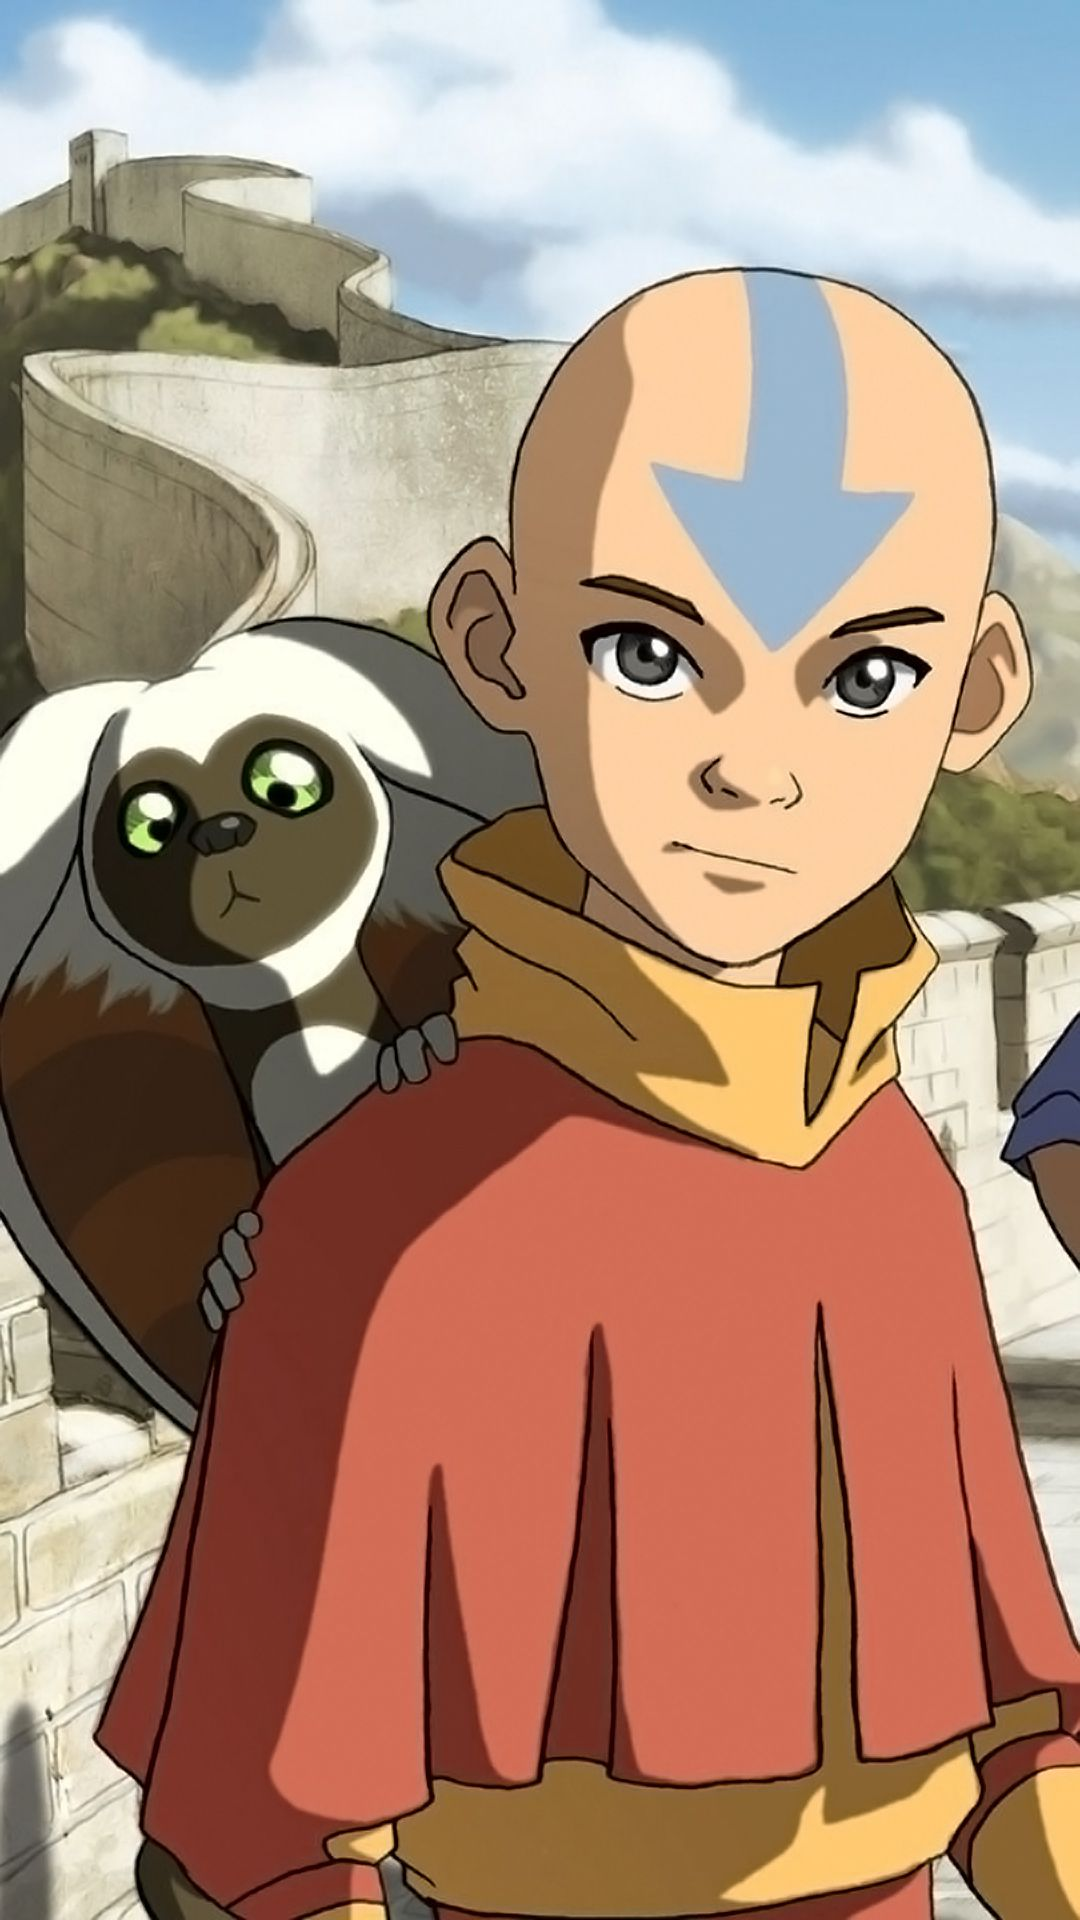 Download Hd Wallpapers Of Inspirational Quotes Avatar The Last Airbender Wallpaper Hd For Android